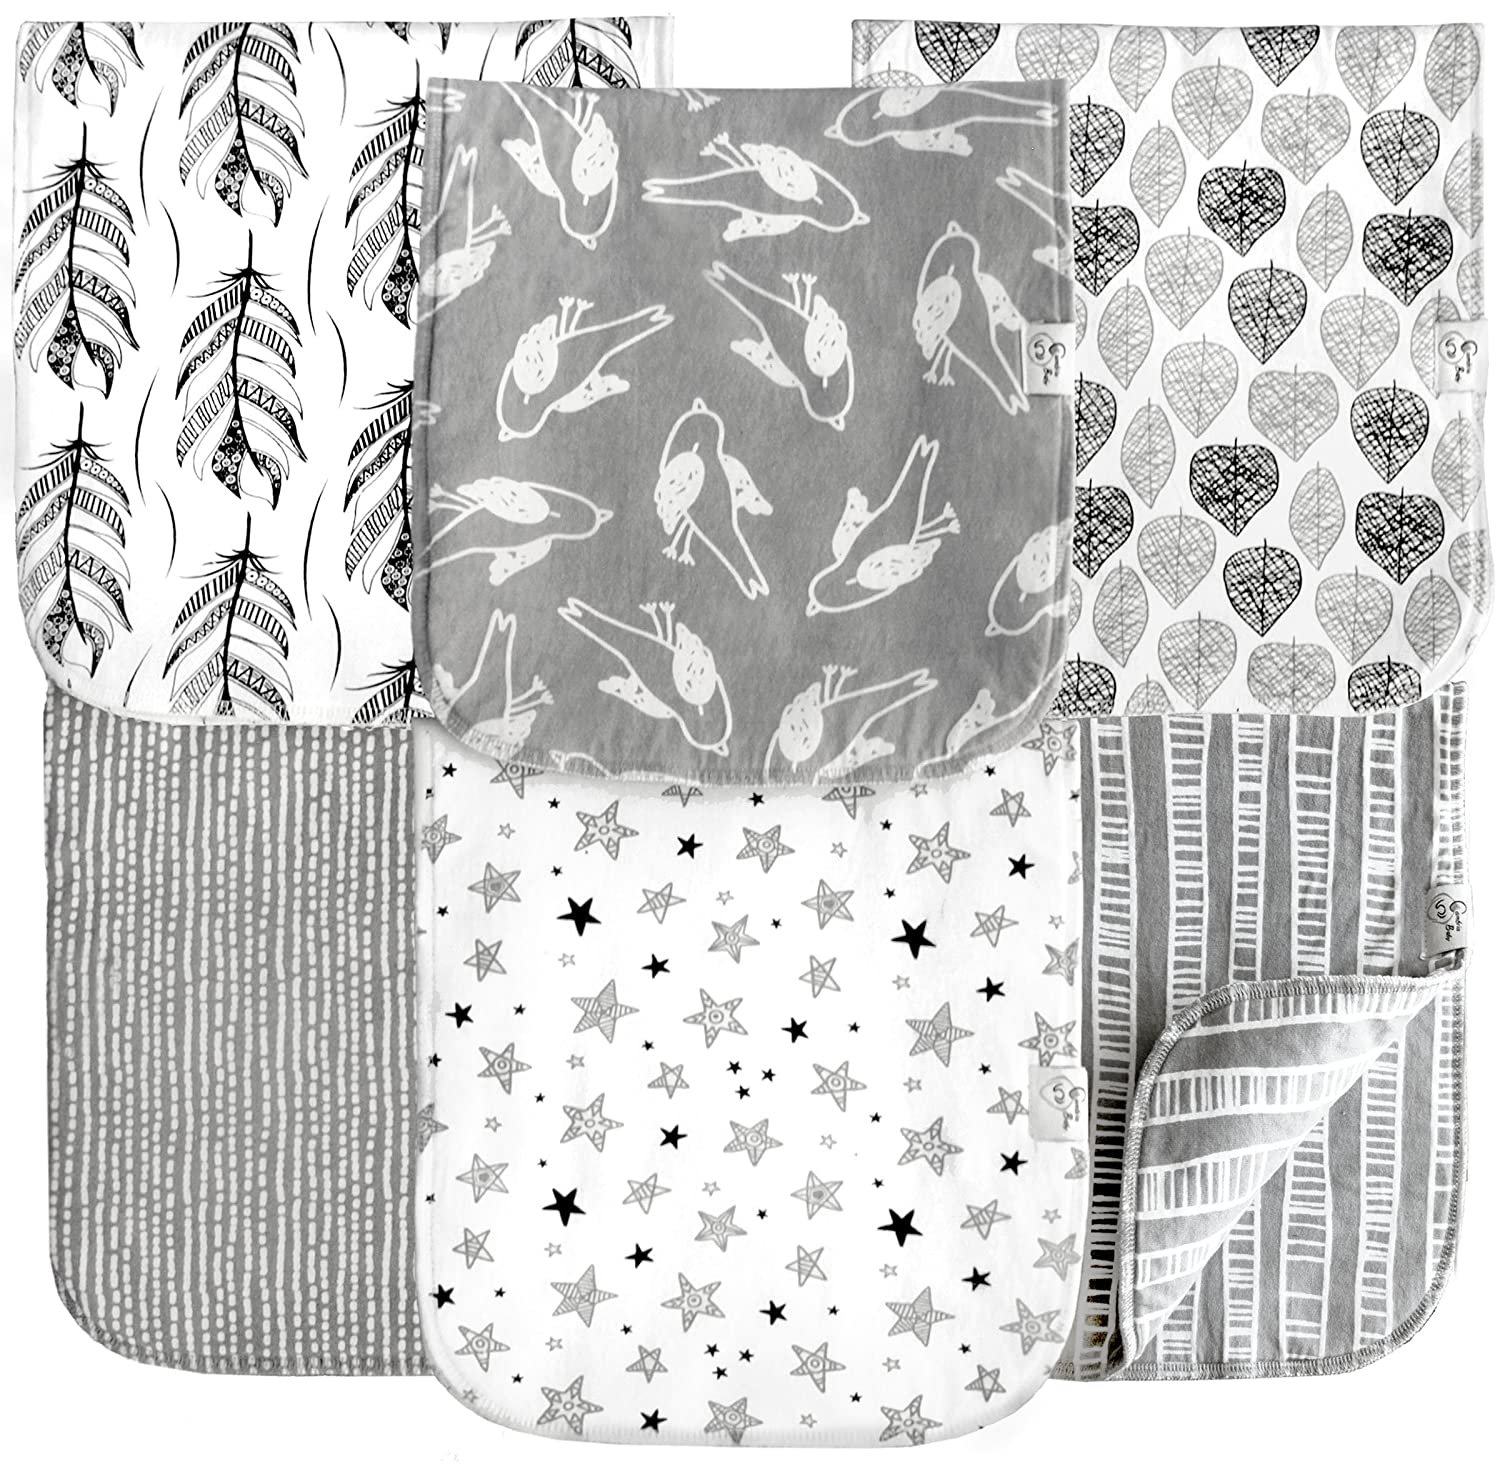 6 Pack Extra Large Organic Cotton Burp Cloths, Unisex, Reversible, with 3 Layer Inner Fleece Absorbency, 10